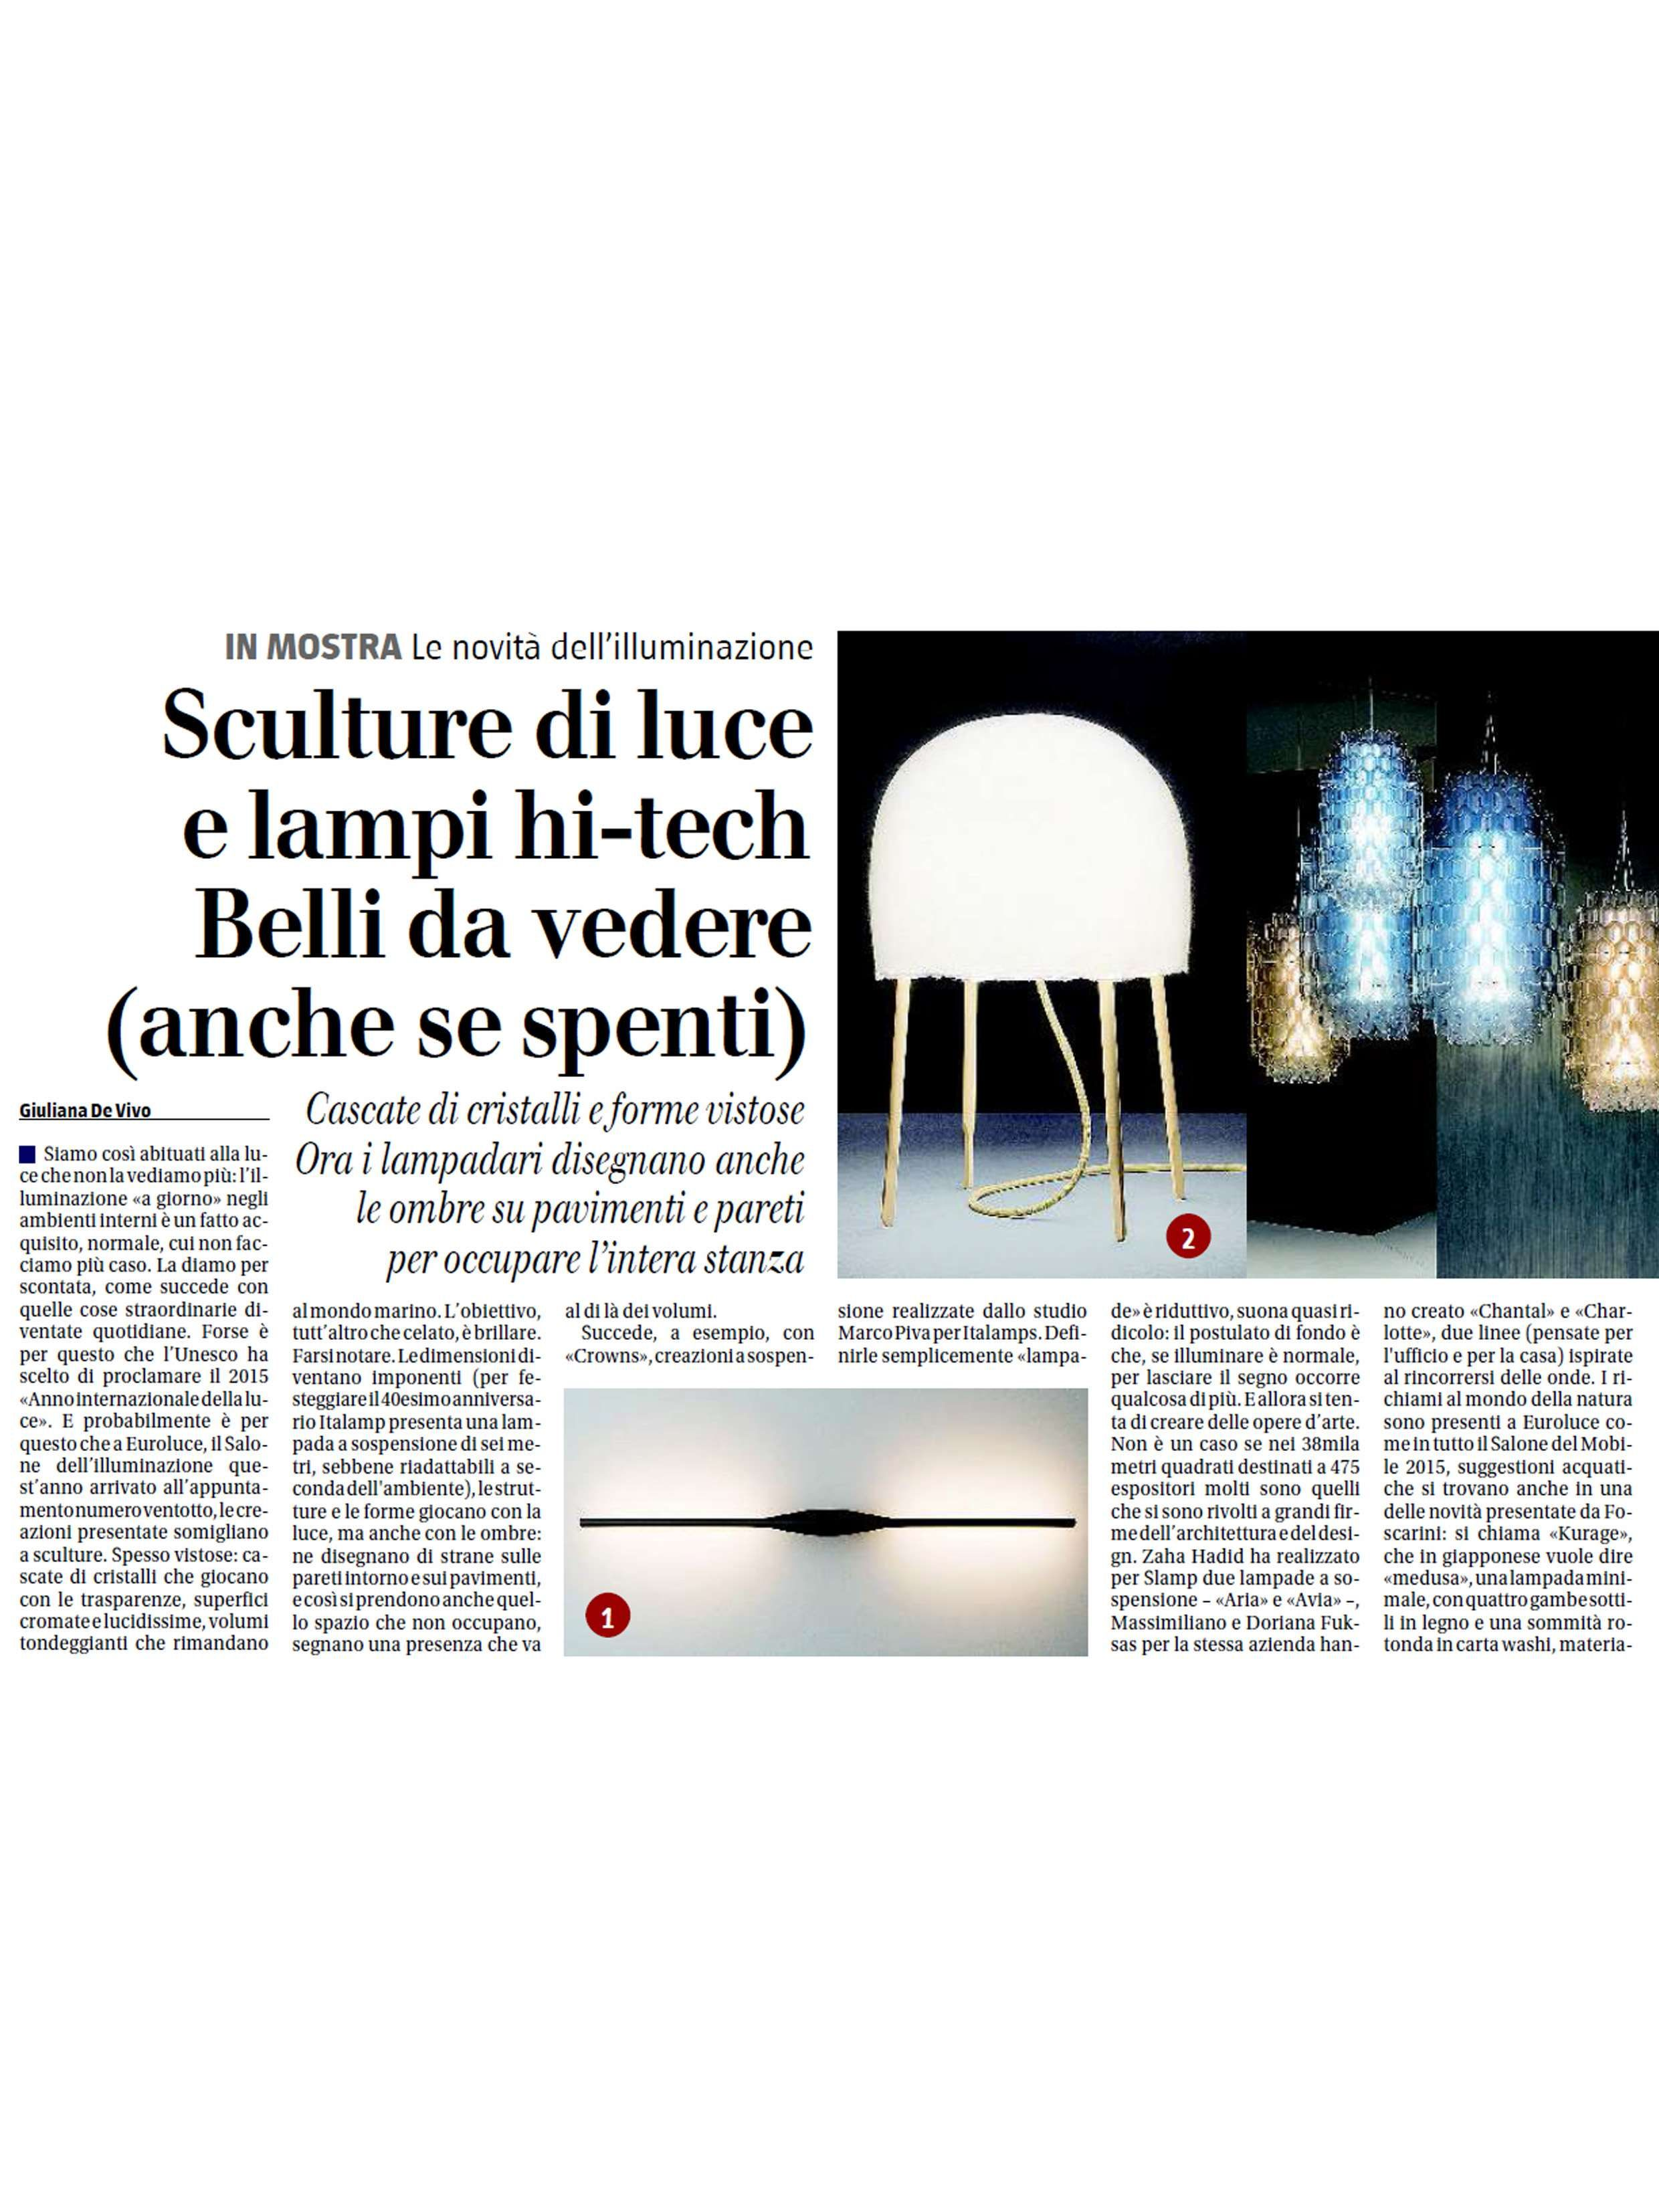 Chantal by Fuksas on Il Giornale April 2015